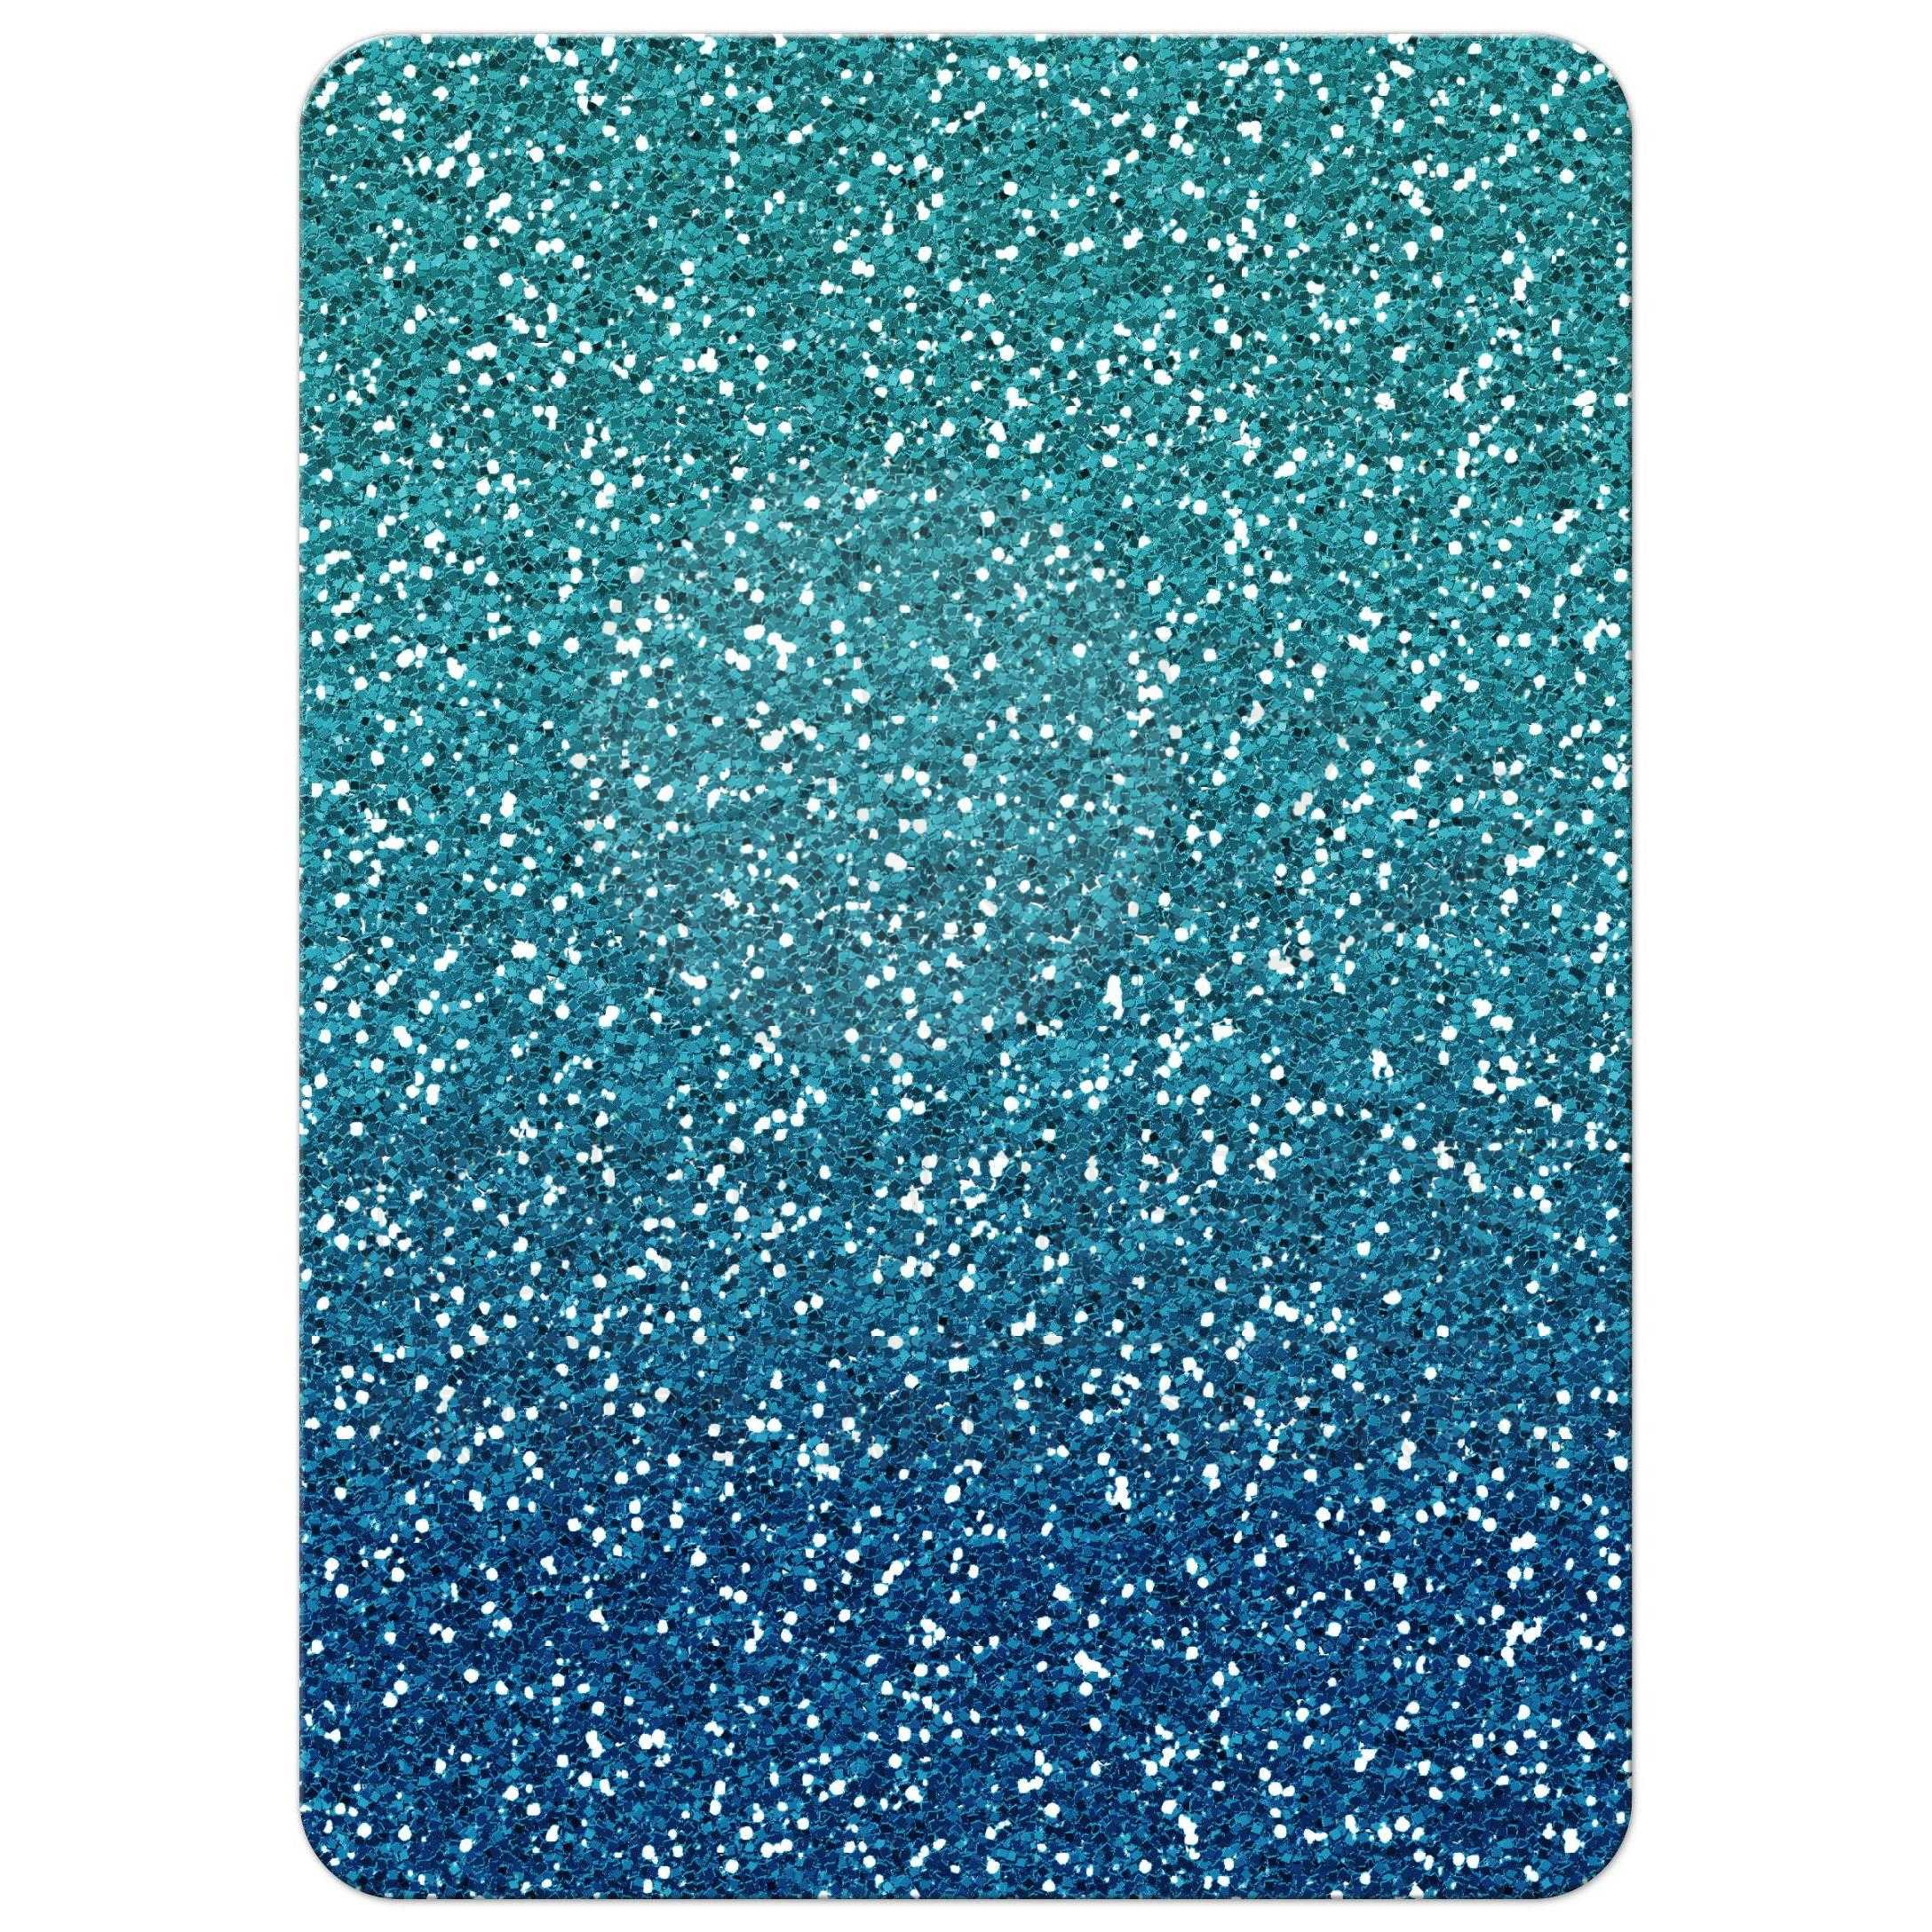 Sweet 16 Party Invitation - Turquoise Blue Ombre Glitter Stripes